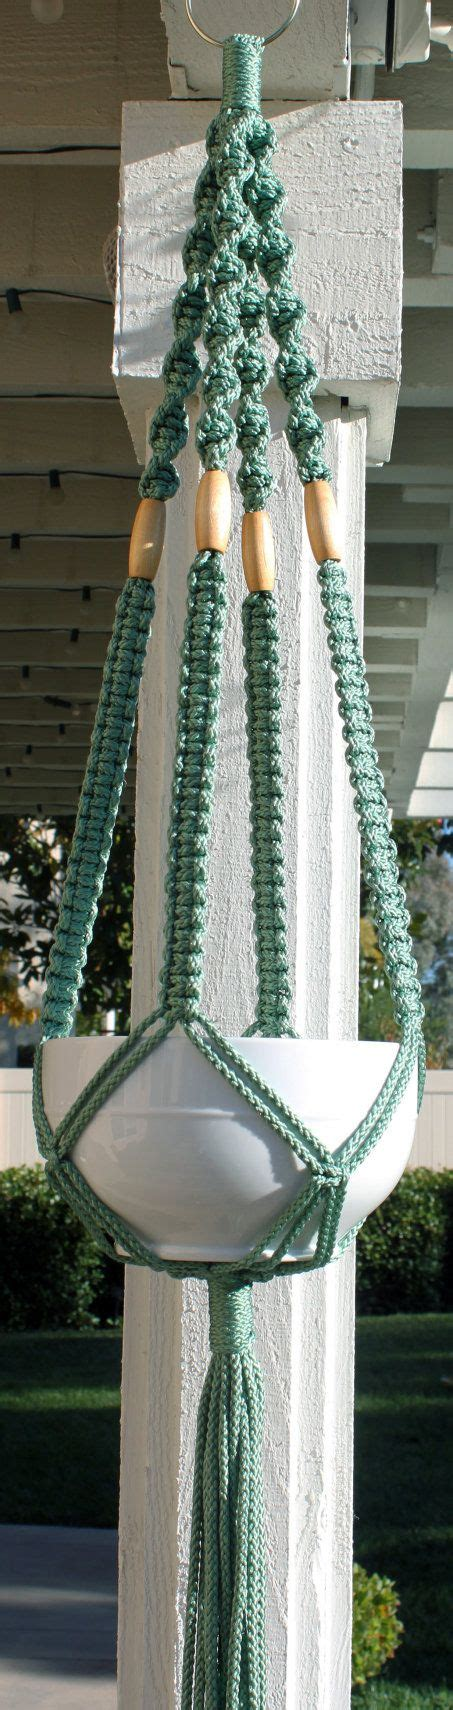 Handmade Macrame Plant Hangers - handmade blue green teal macrame plant hanger holder with